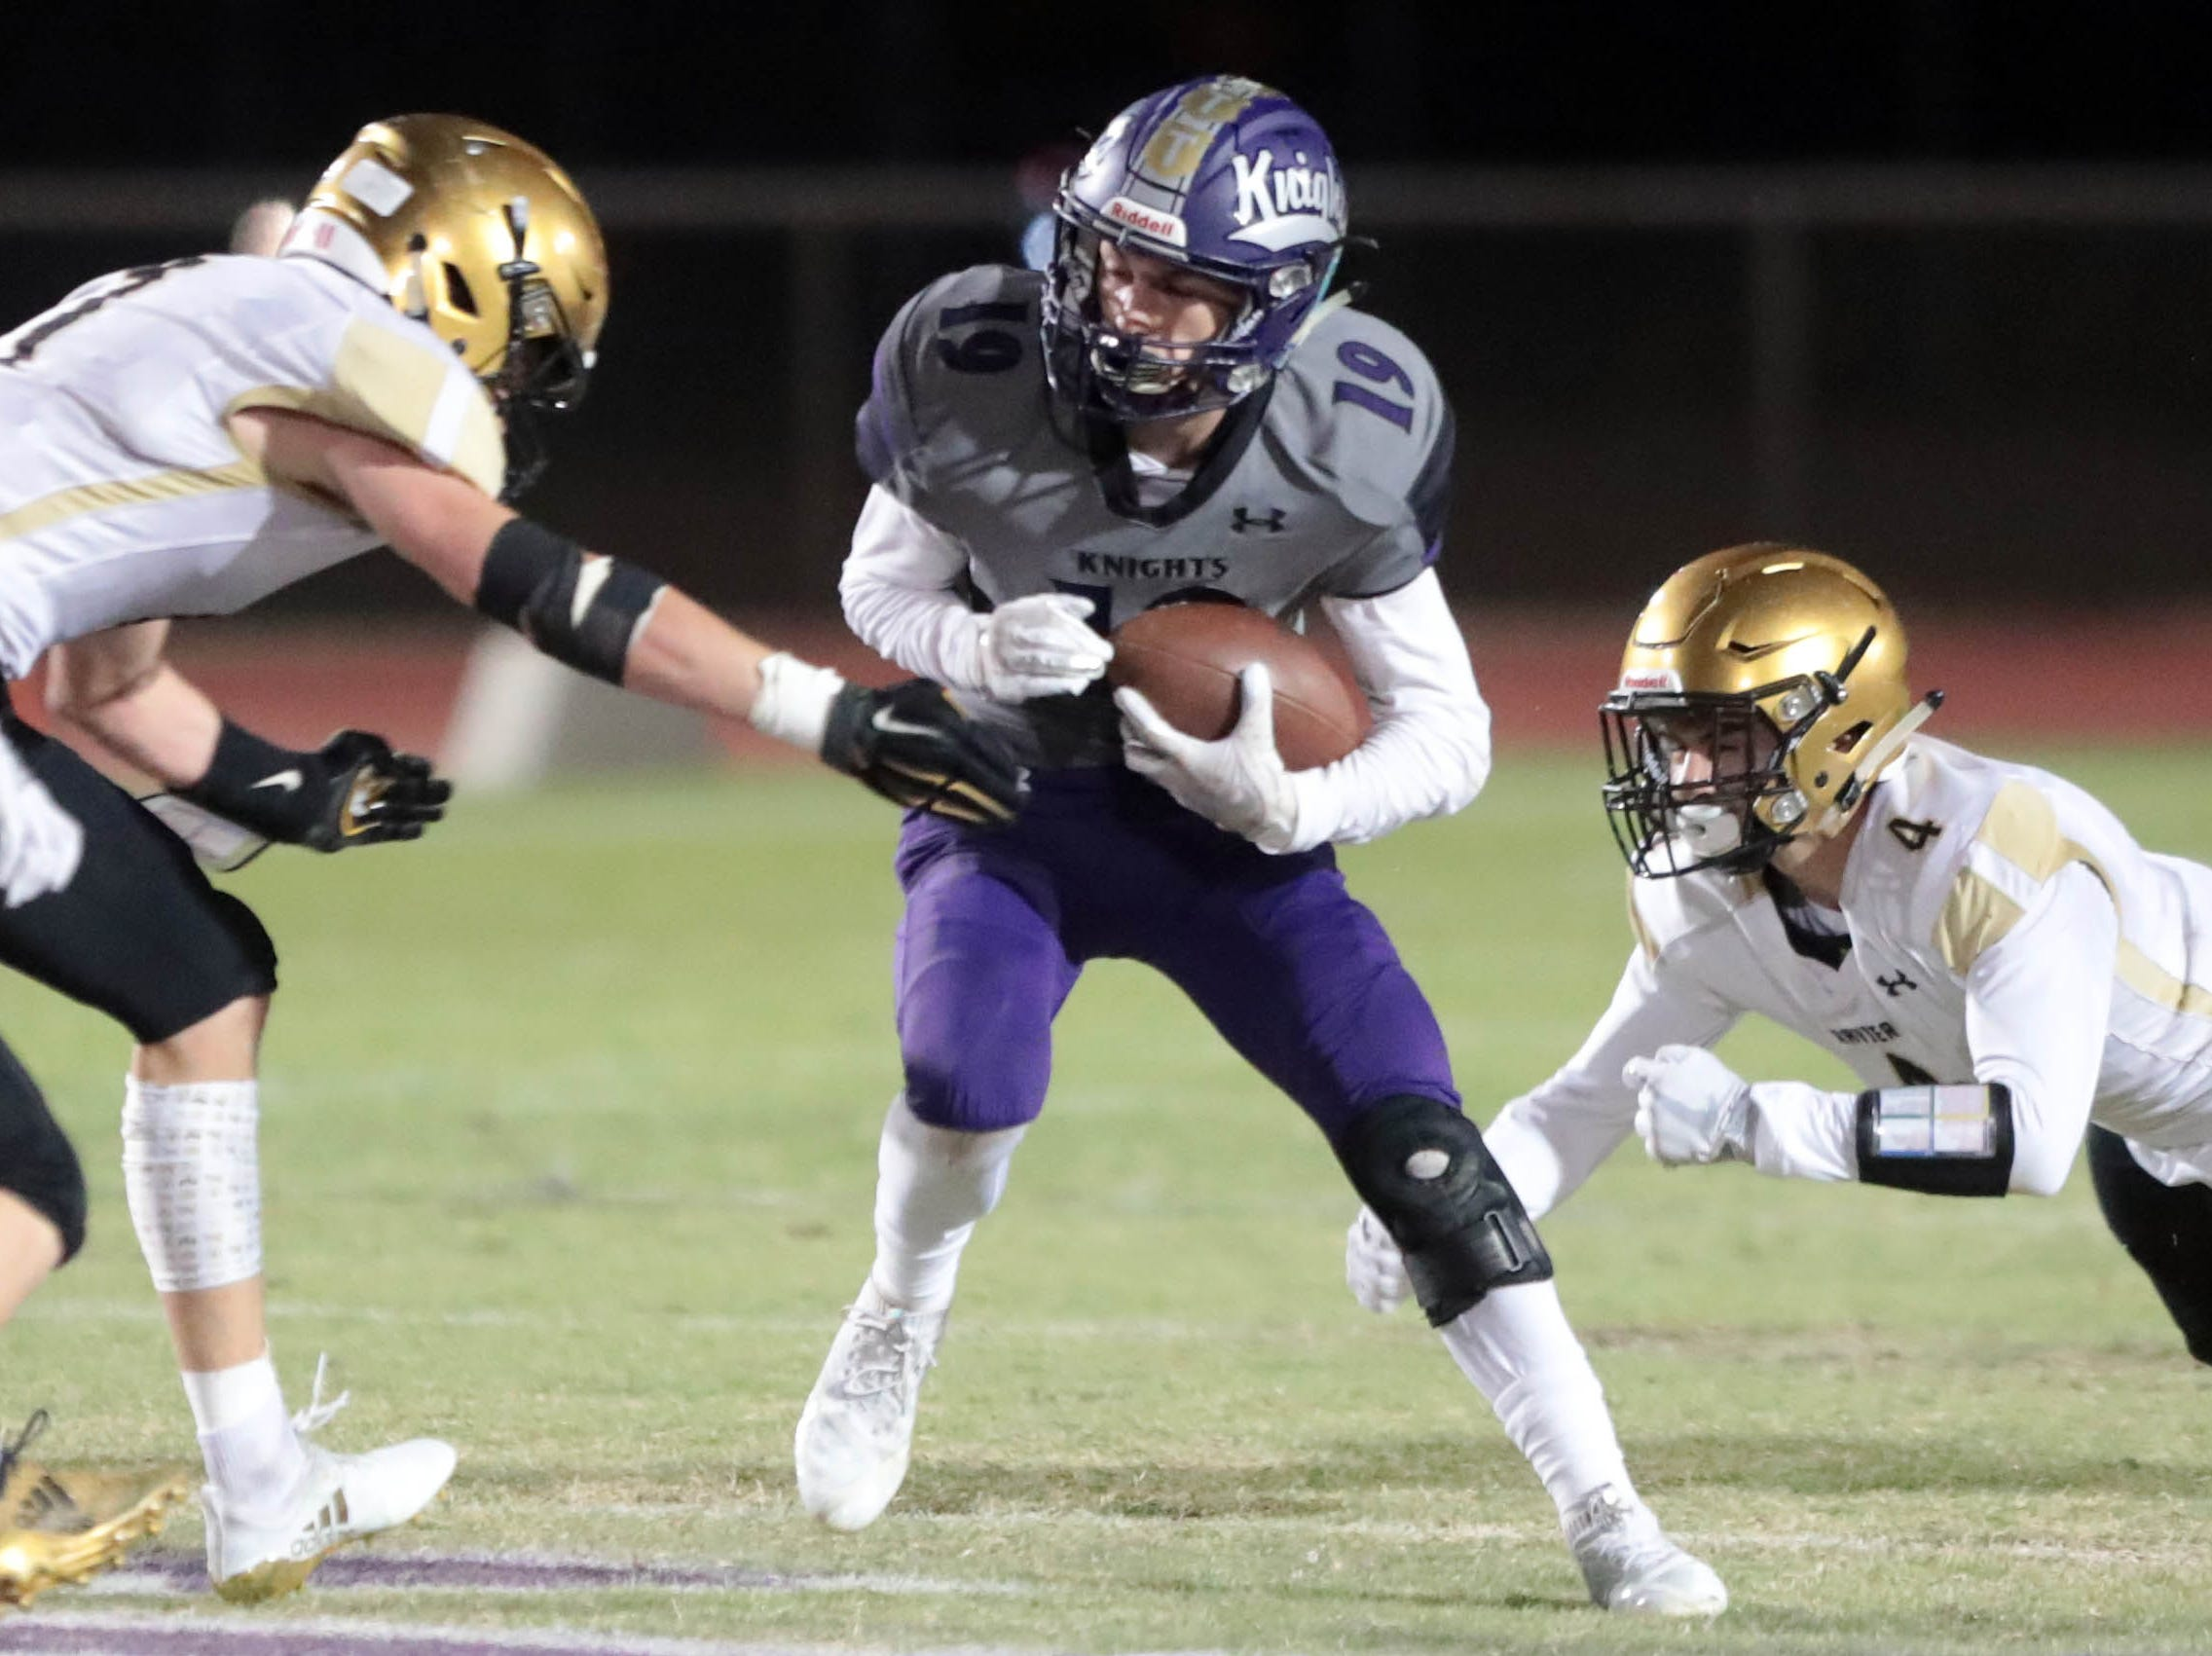 Shadow Hills host Xavier Prep on Thursday, October 11, 2018 in Indio.